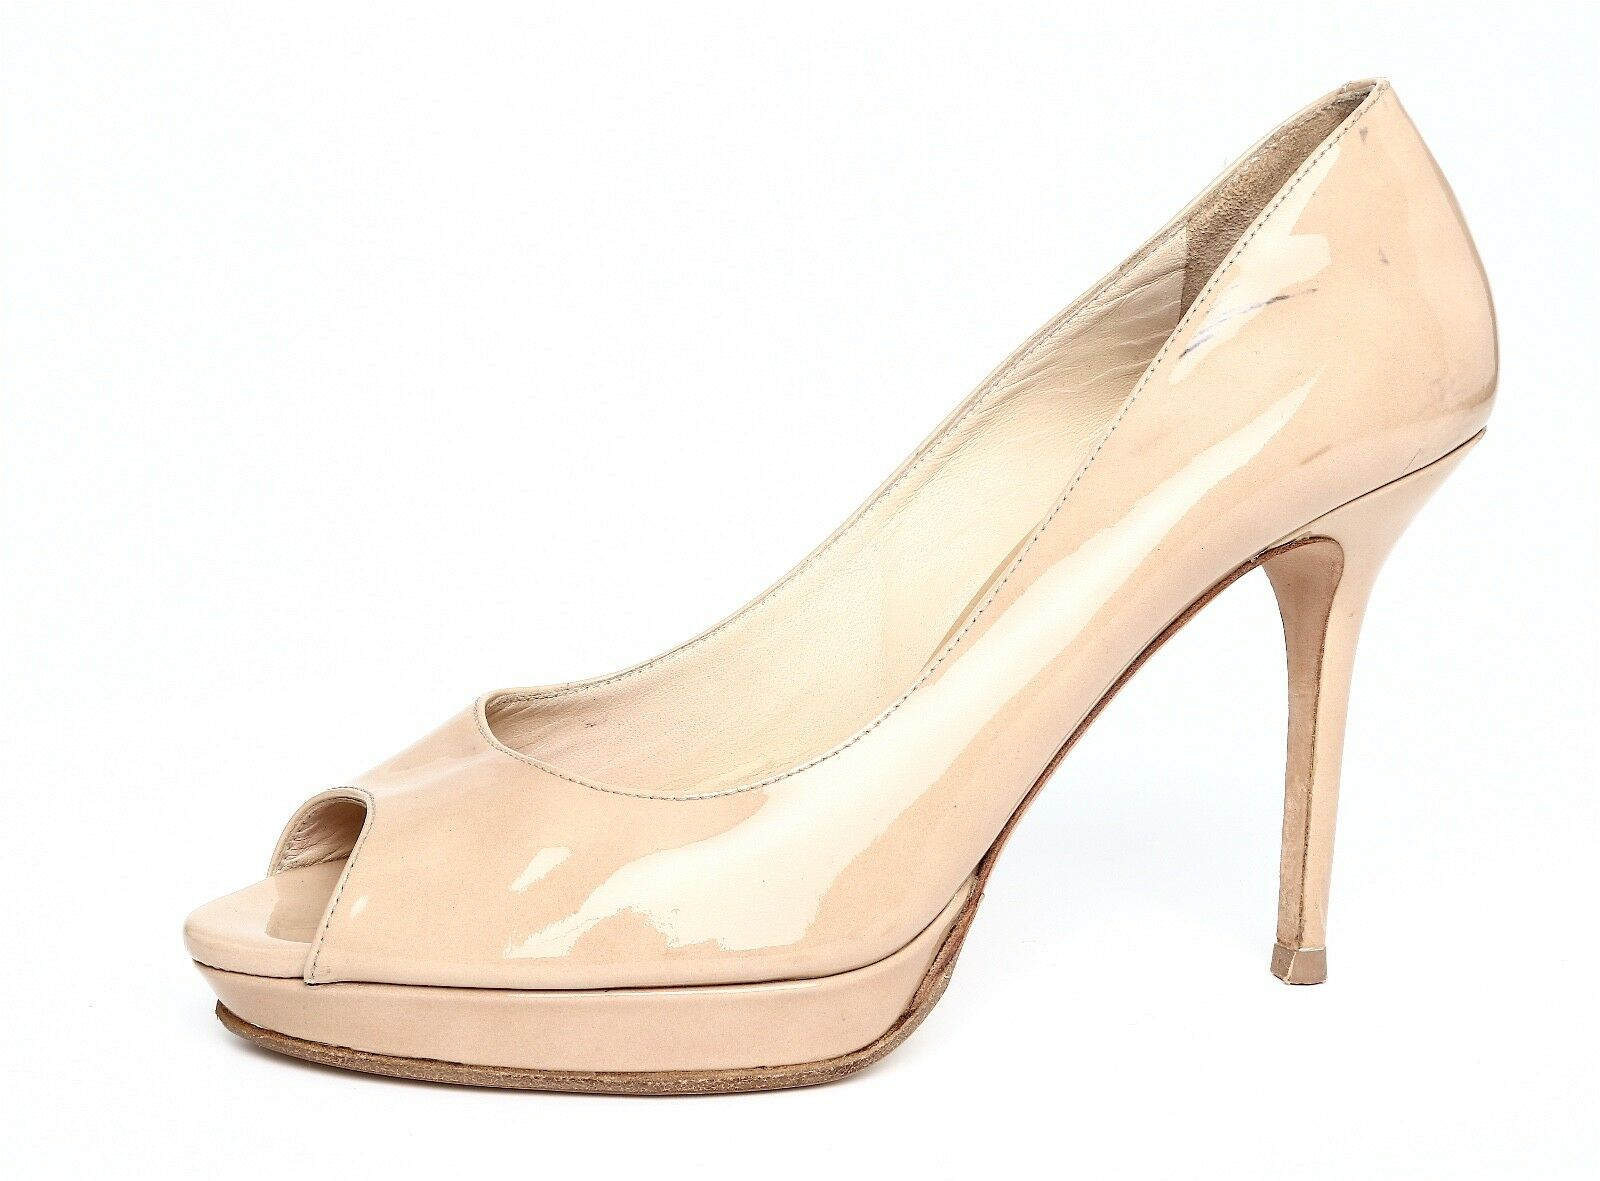 ultimi stili Jimmy Choo Donna  Slip Slip Slip On Beige Patent Leather Pump Sz 38.5 EUR 4718  profitto zero